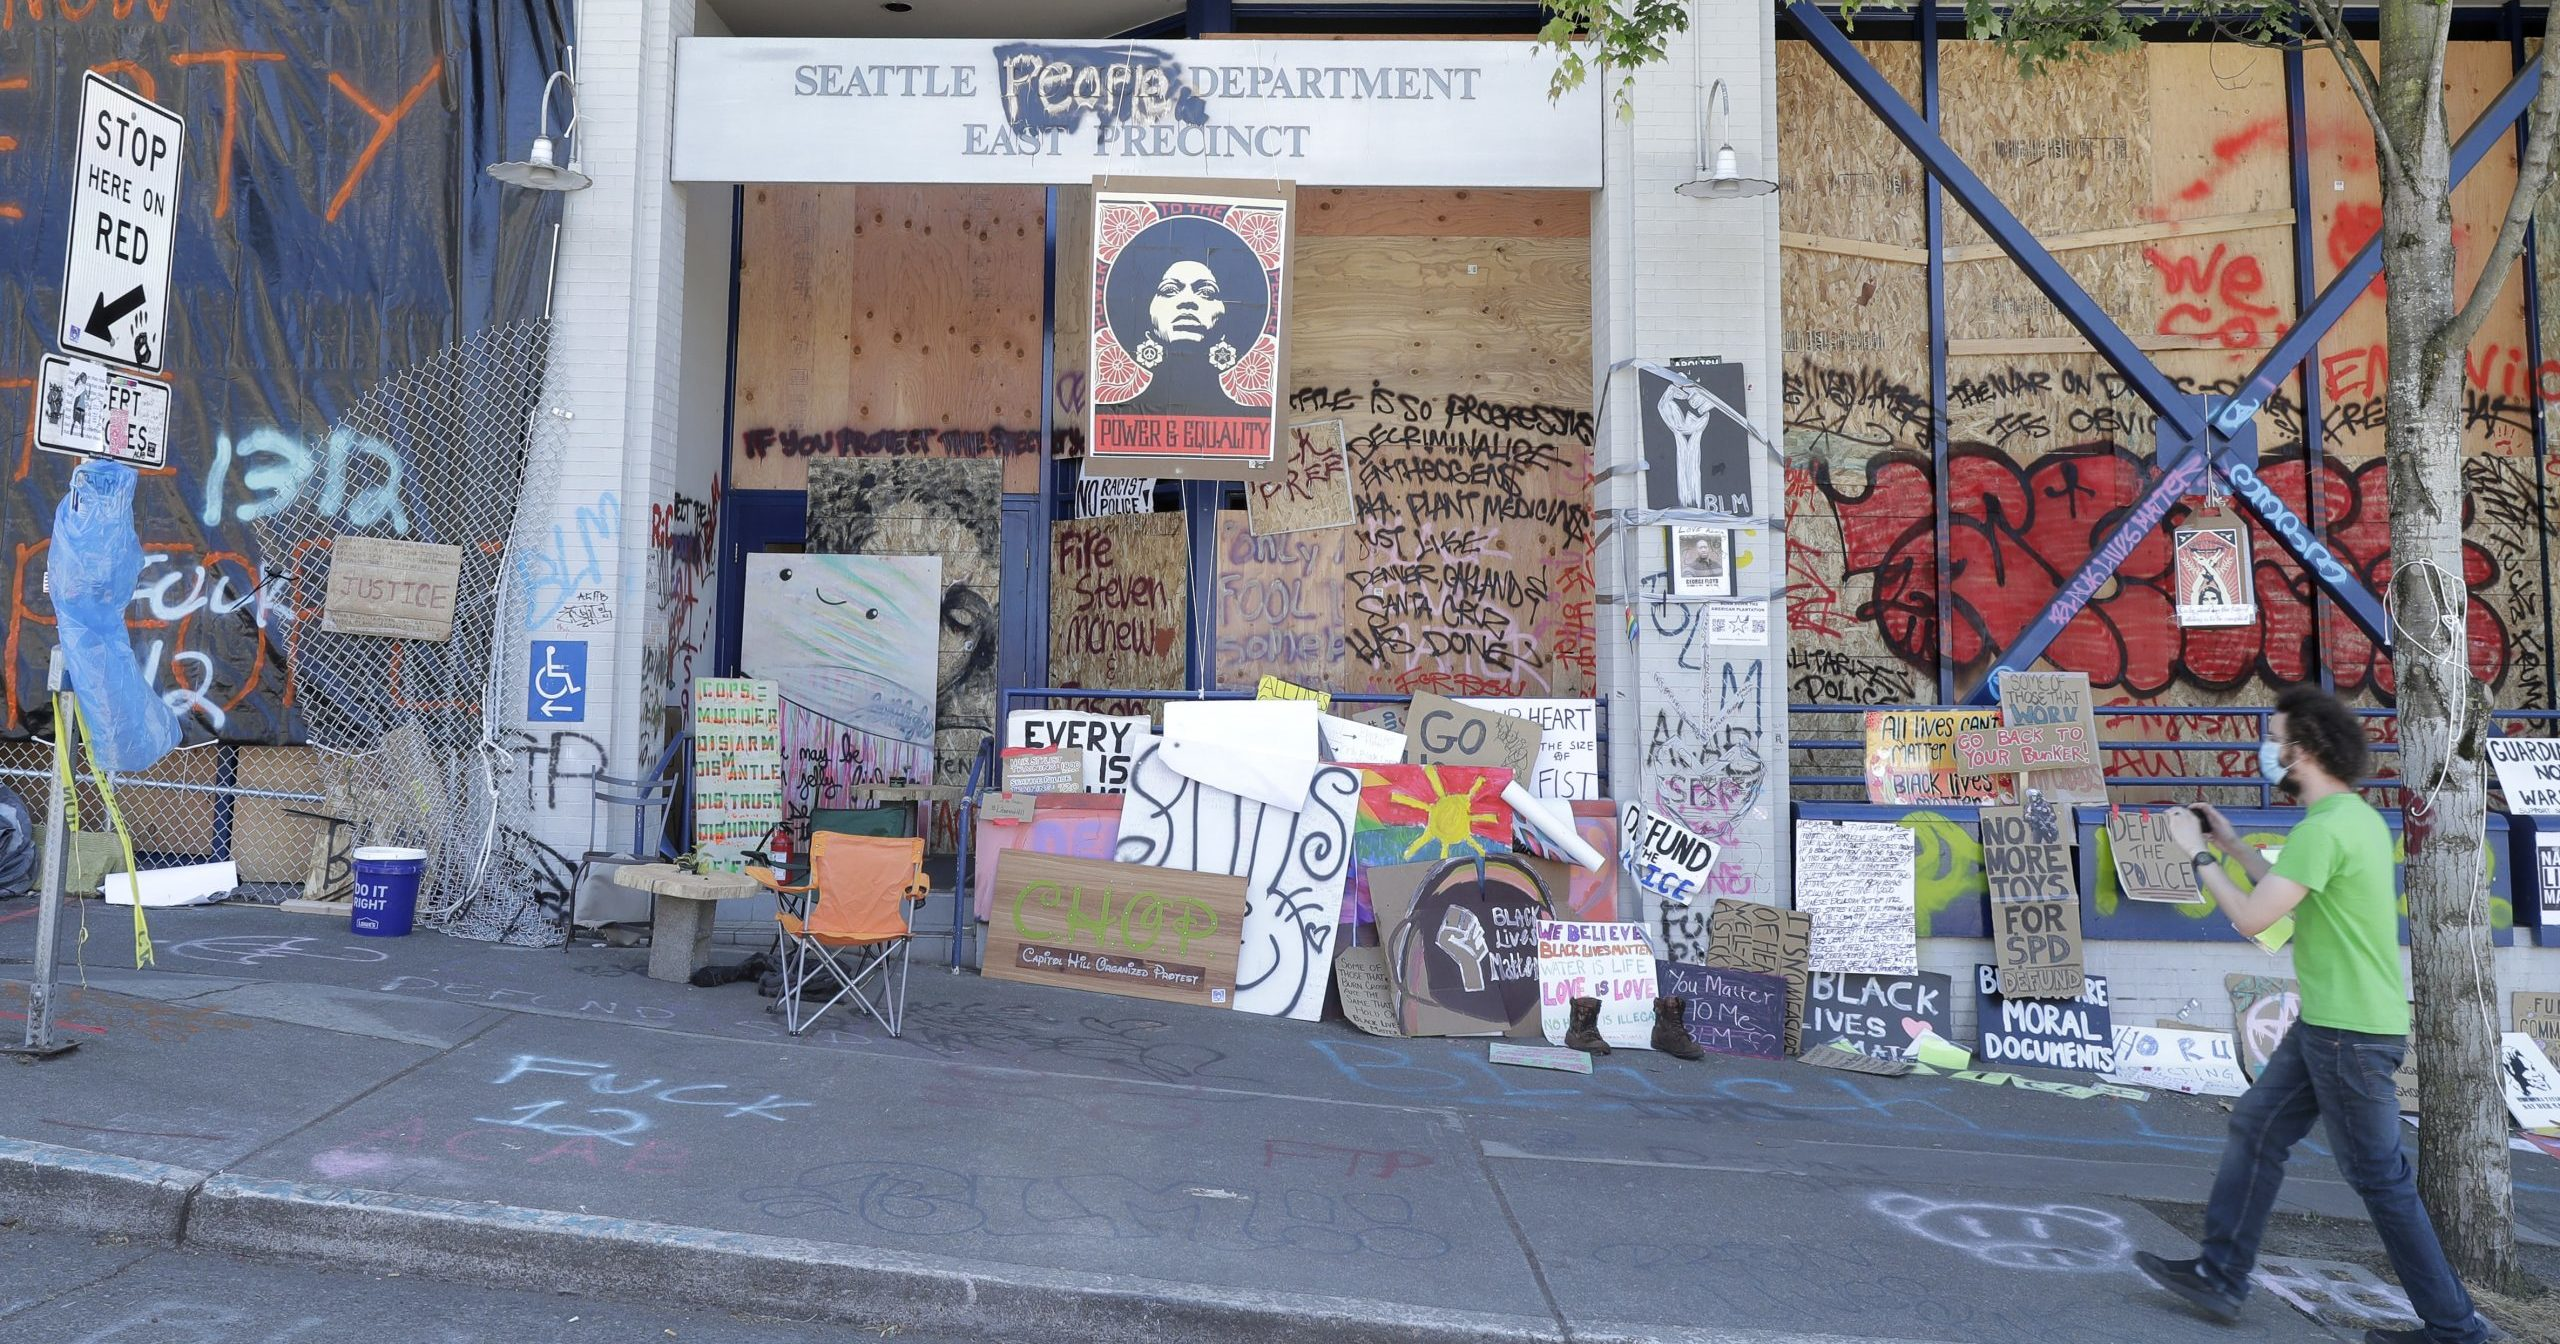 """A person takes a photo of the Seattle Police East Precinct building on June 22, 2020, inside what has been named the Capitol Hill Occupied Protest zone in Seattle. For the second time in less than 48 hours, there was a shooting near the """"CHOP"""" area that has been occupied by protesters after police pulled back from several blocks of the city's Capitol Hill neighborhood."""